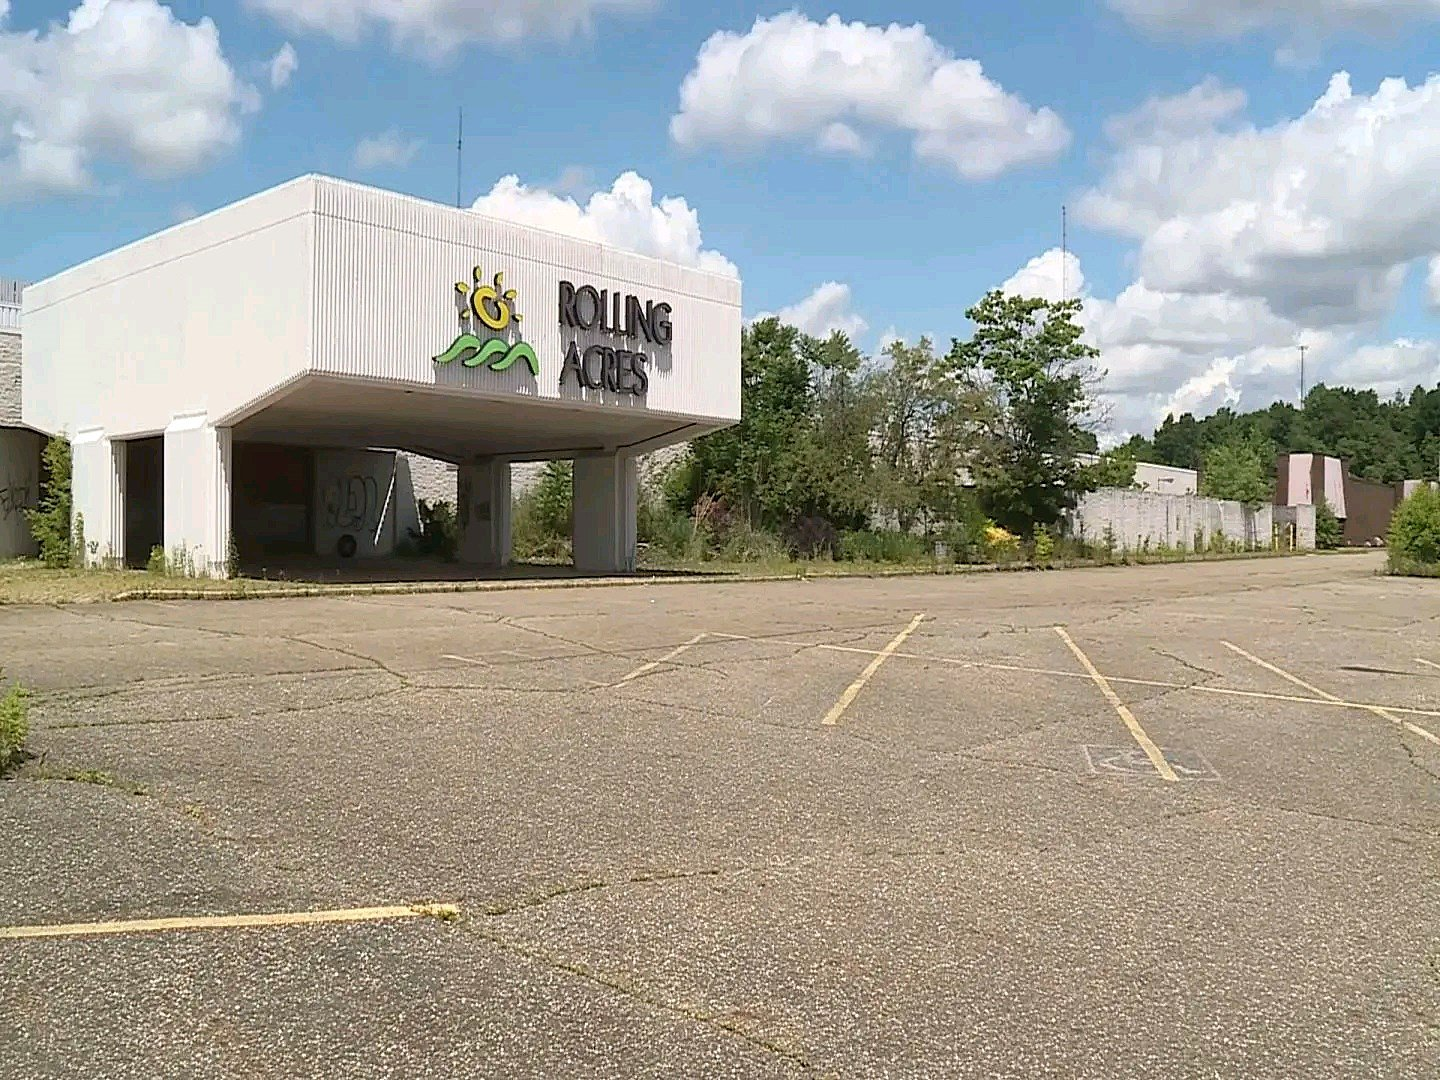 amazon to take over former rolling acres mall site in akron wfmj com former rolling acres mall site in akron